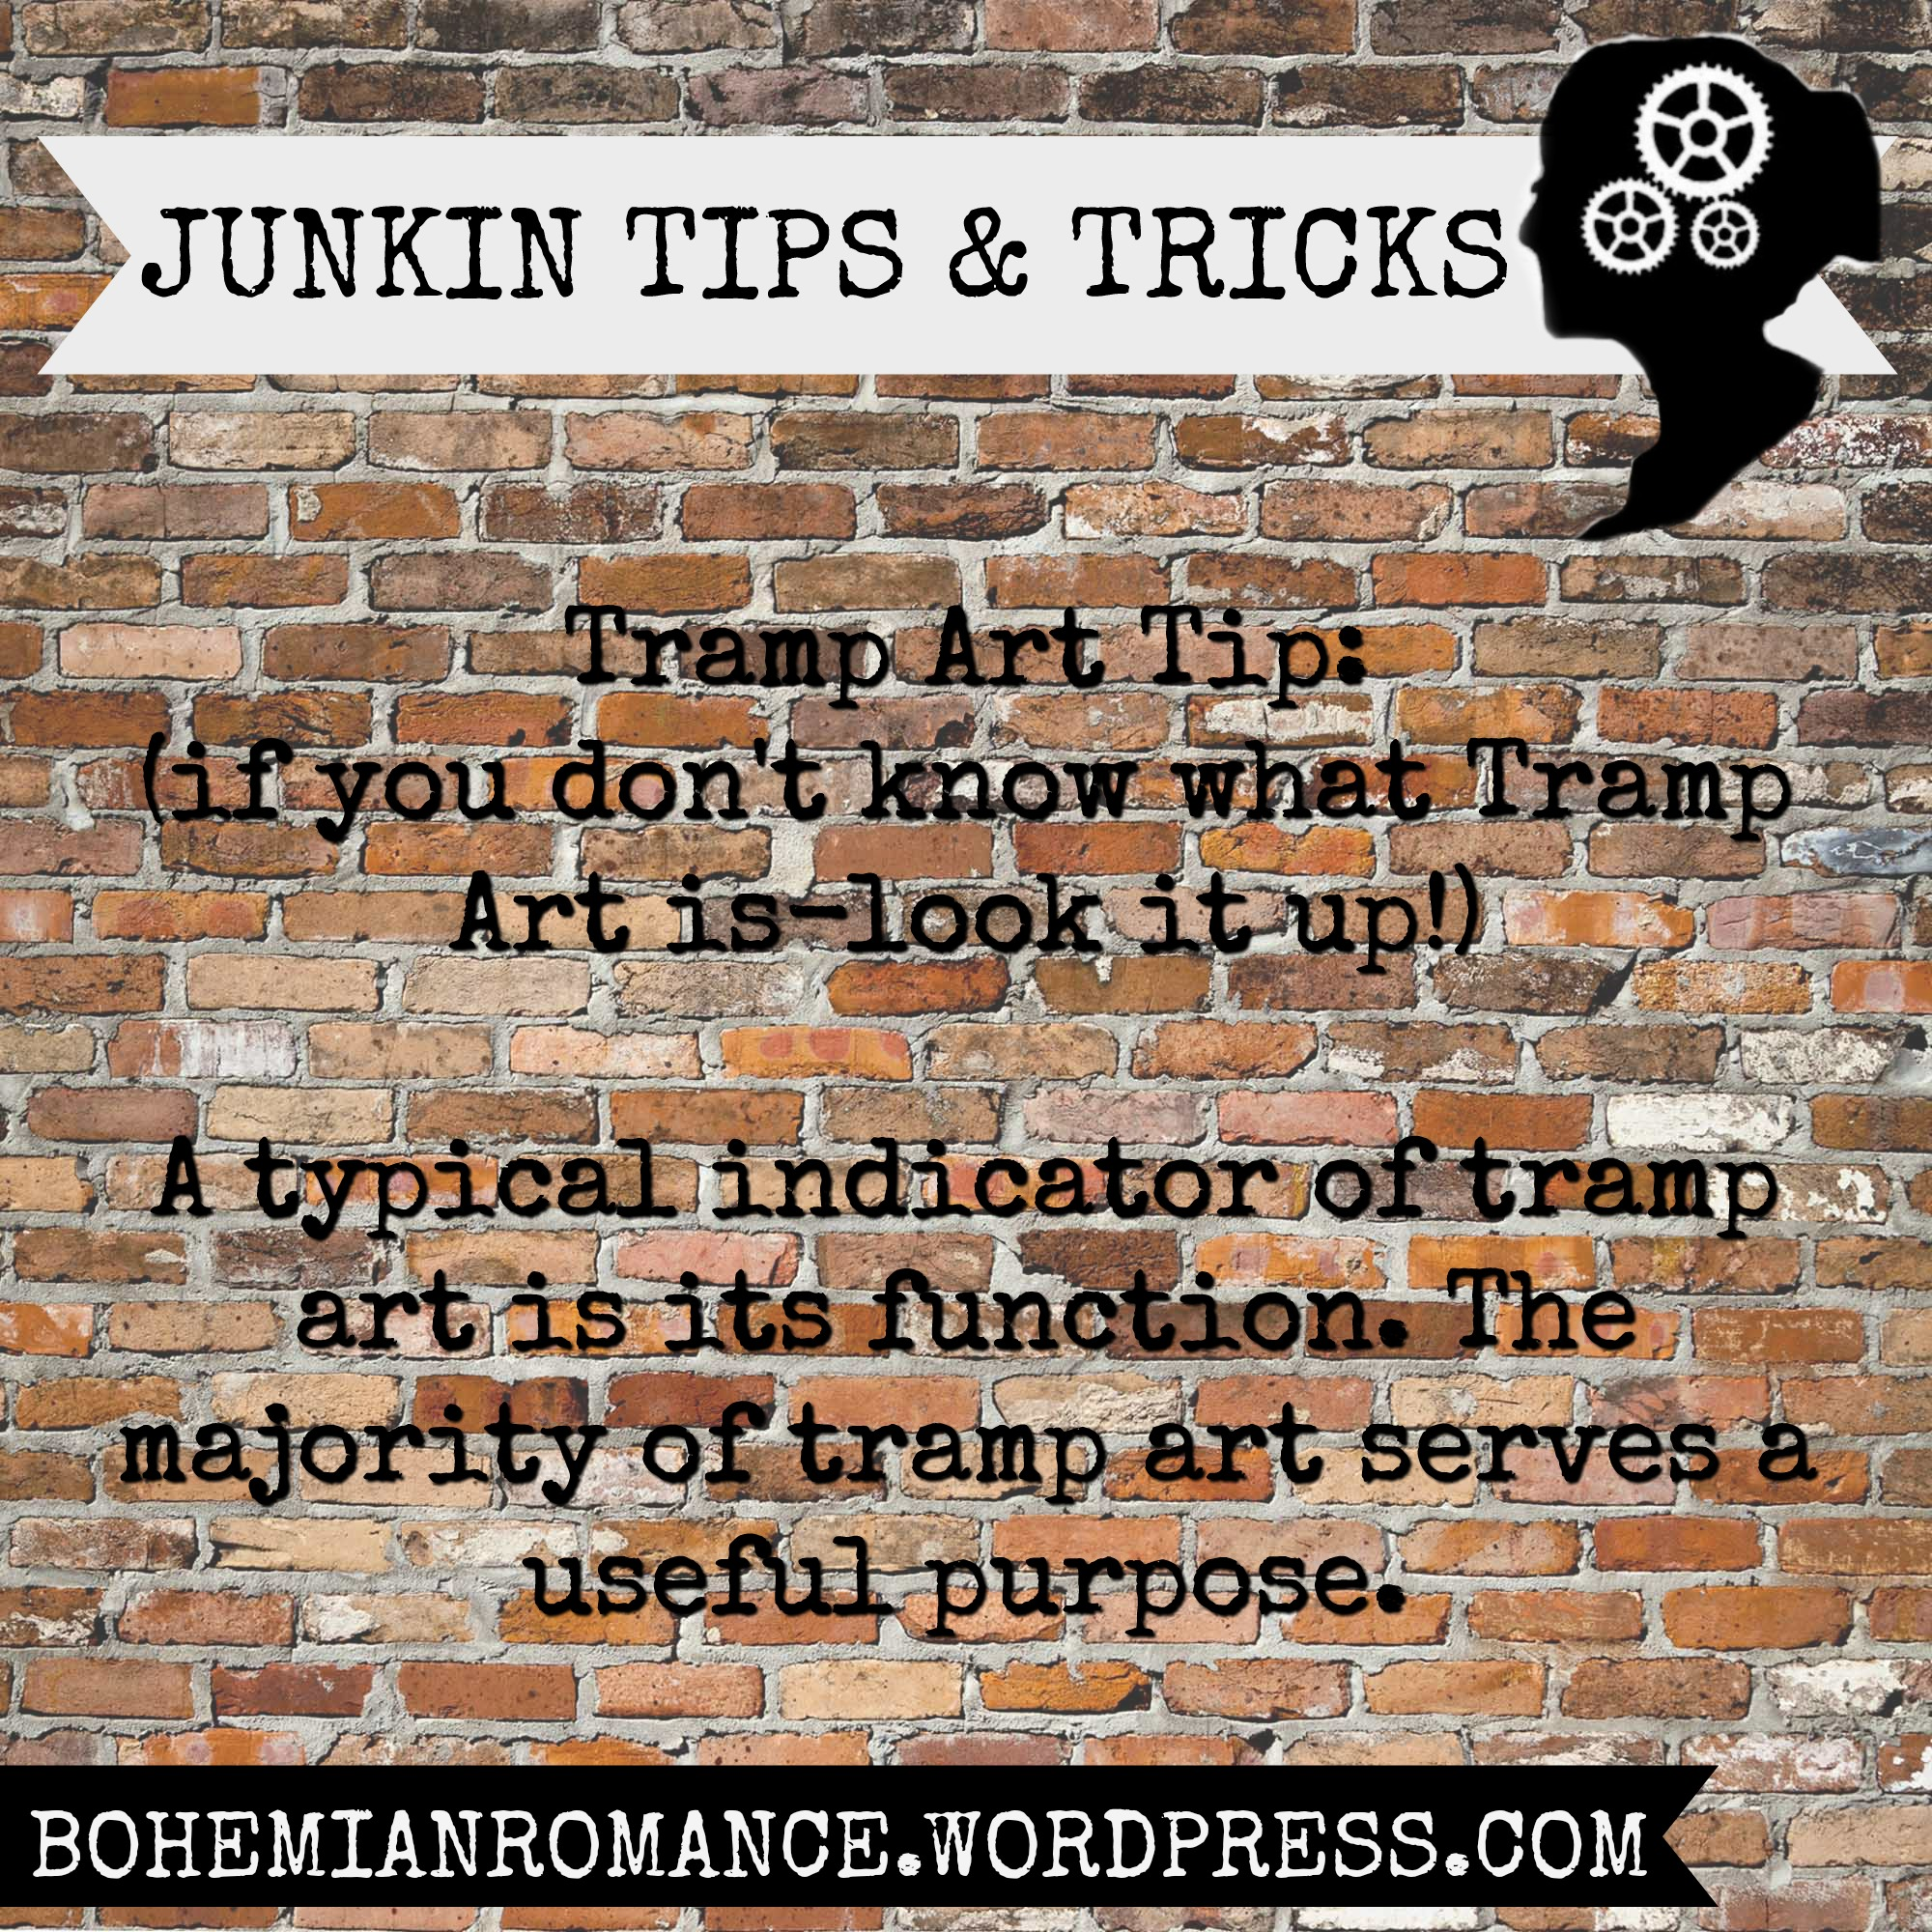 49-junkin-tips-tricks-template